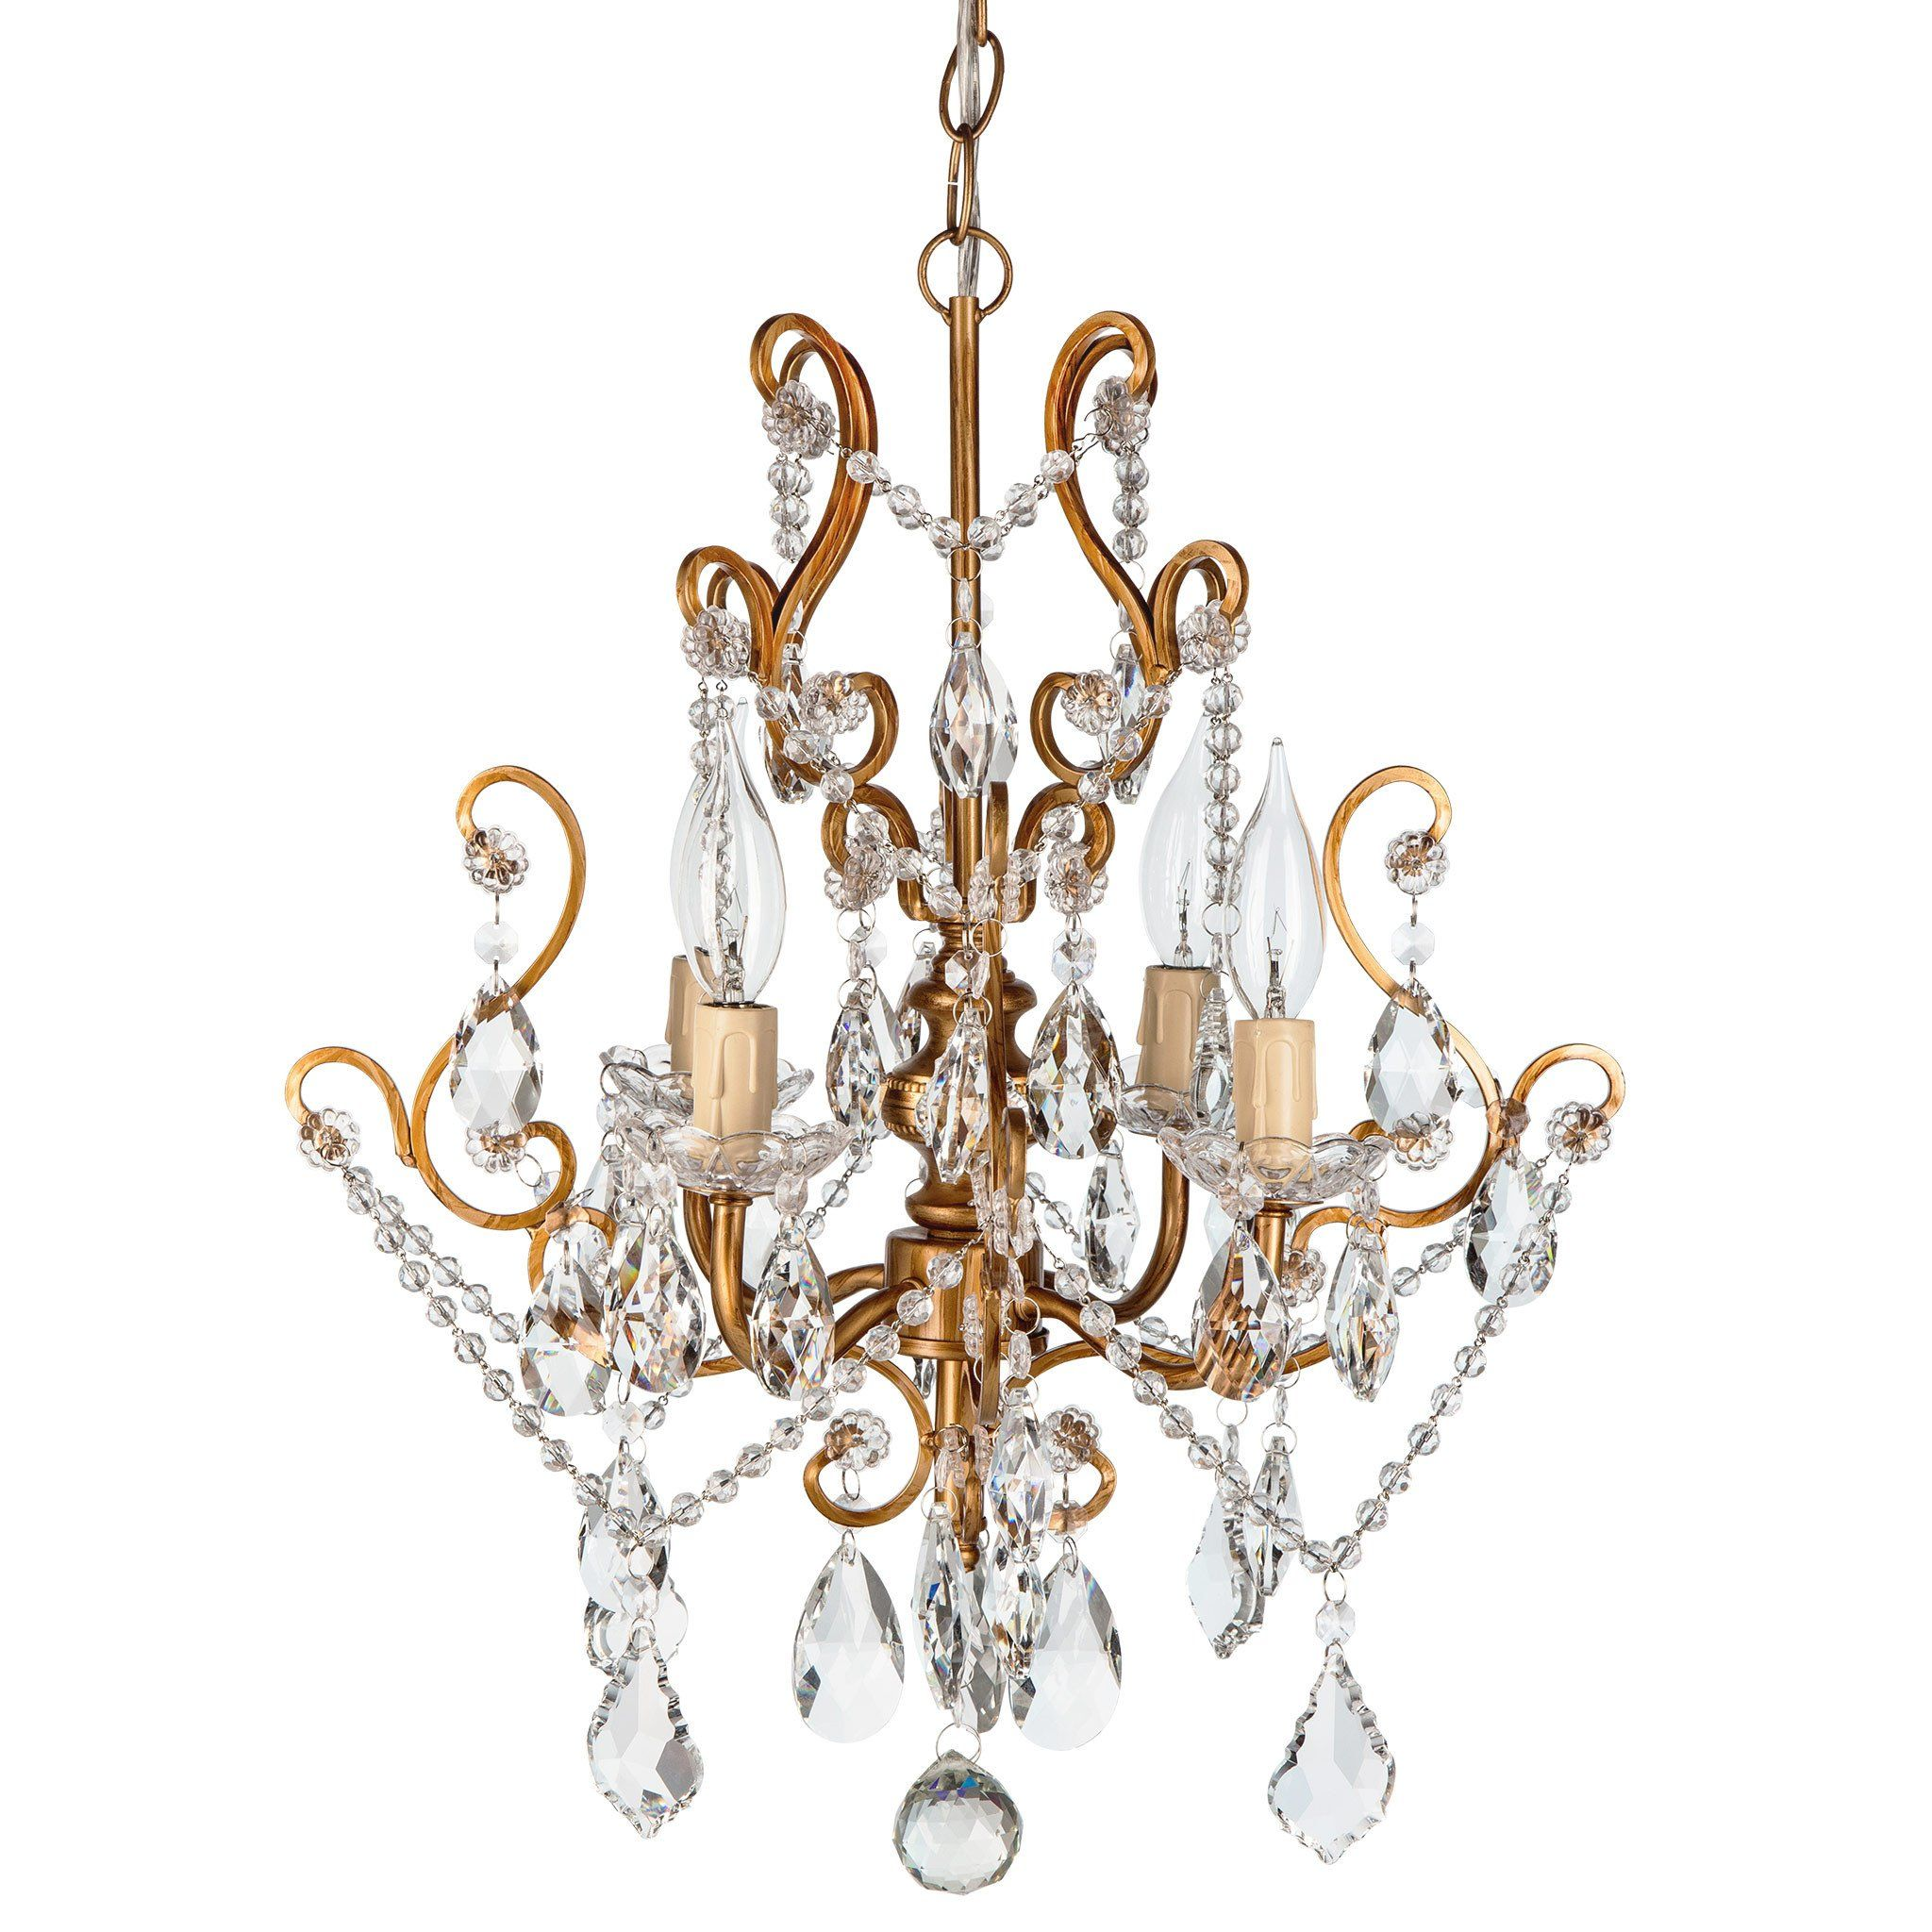 4 Light Vintage Crystal Plug In Chandelier Gold